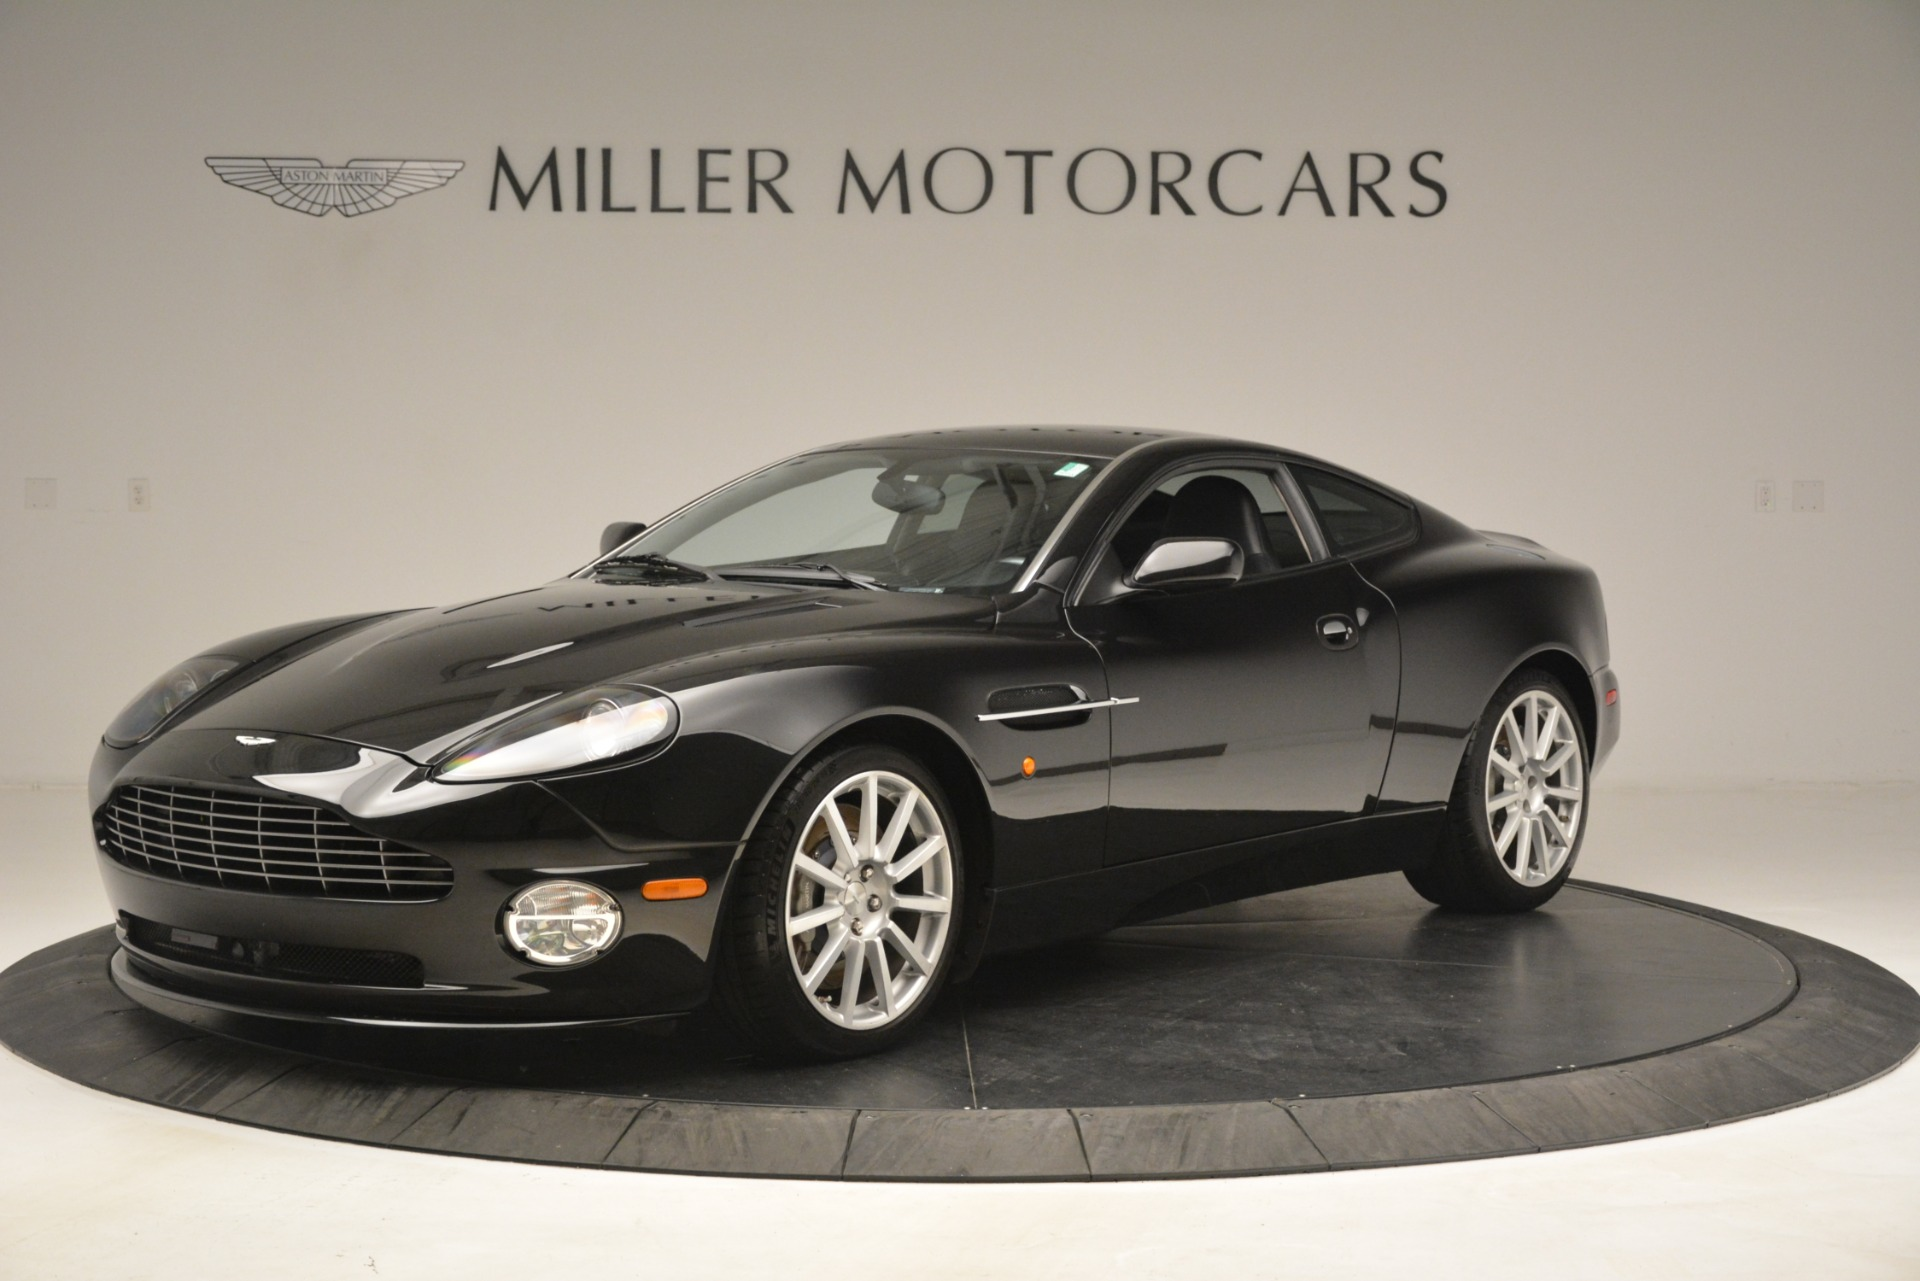 Used 2005 Aston Martin V12 Vanquish S Coupe For Sale In Westport, CT